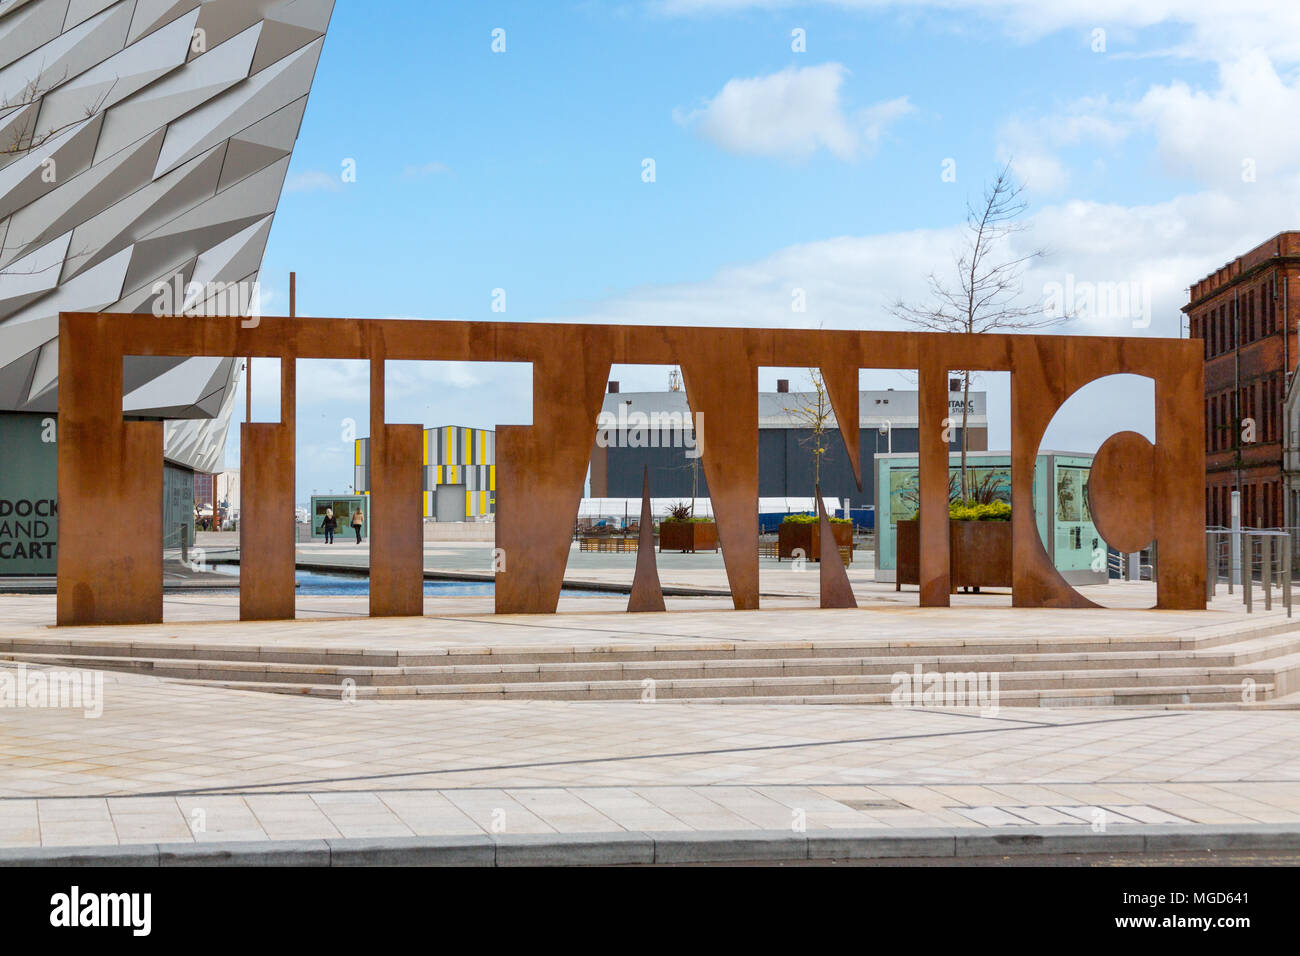 Belfast/N. Ireland - May 31, 2015: At the dock where the Titanic was built is a museum commemorating the iconic vessel. Stock Photo